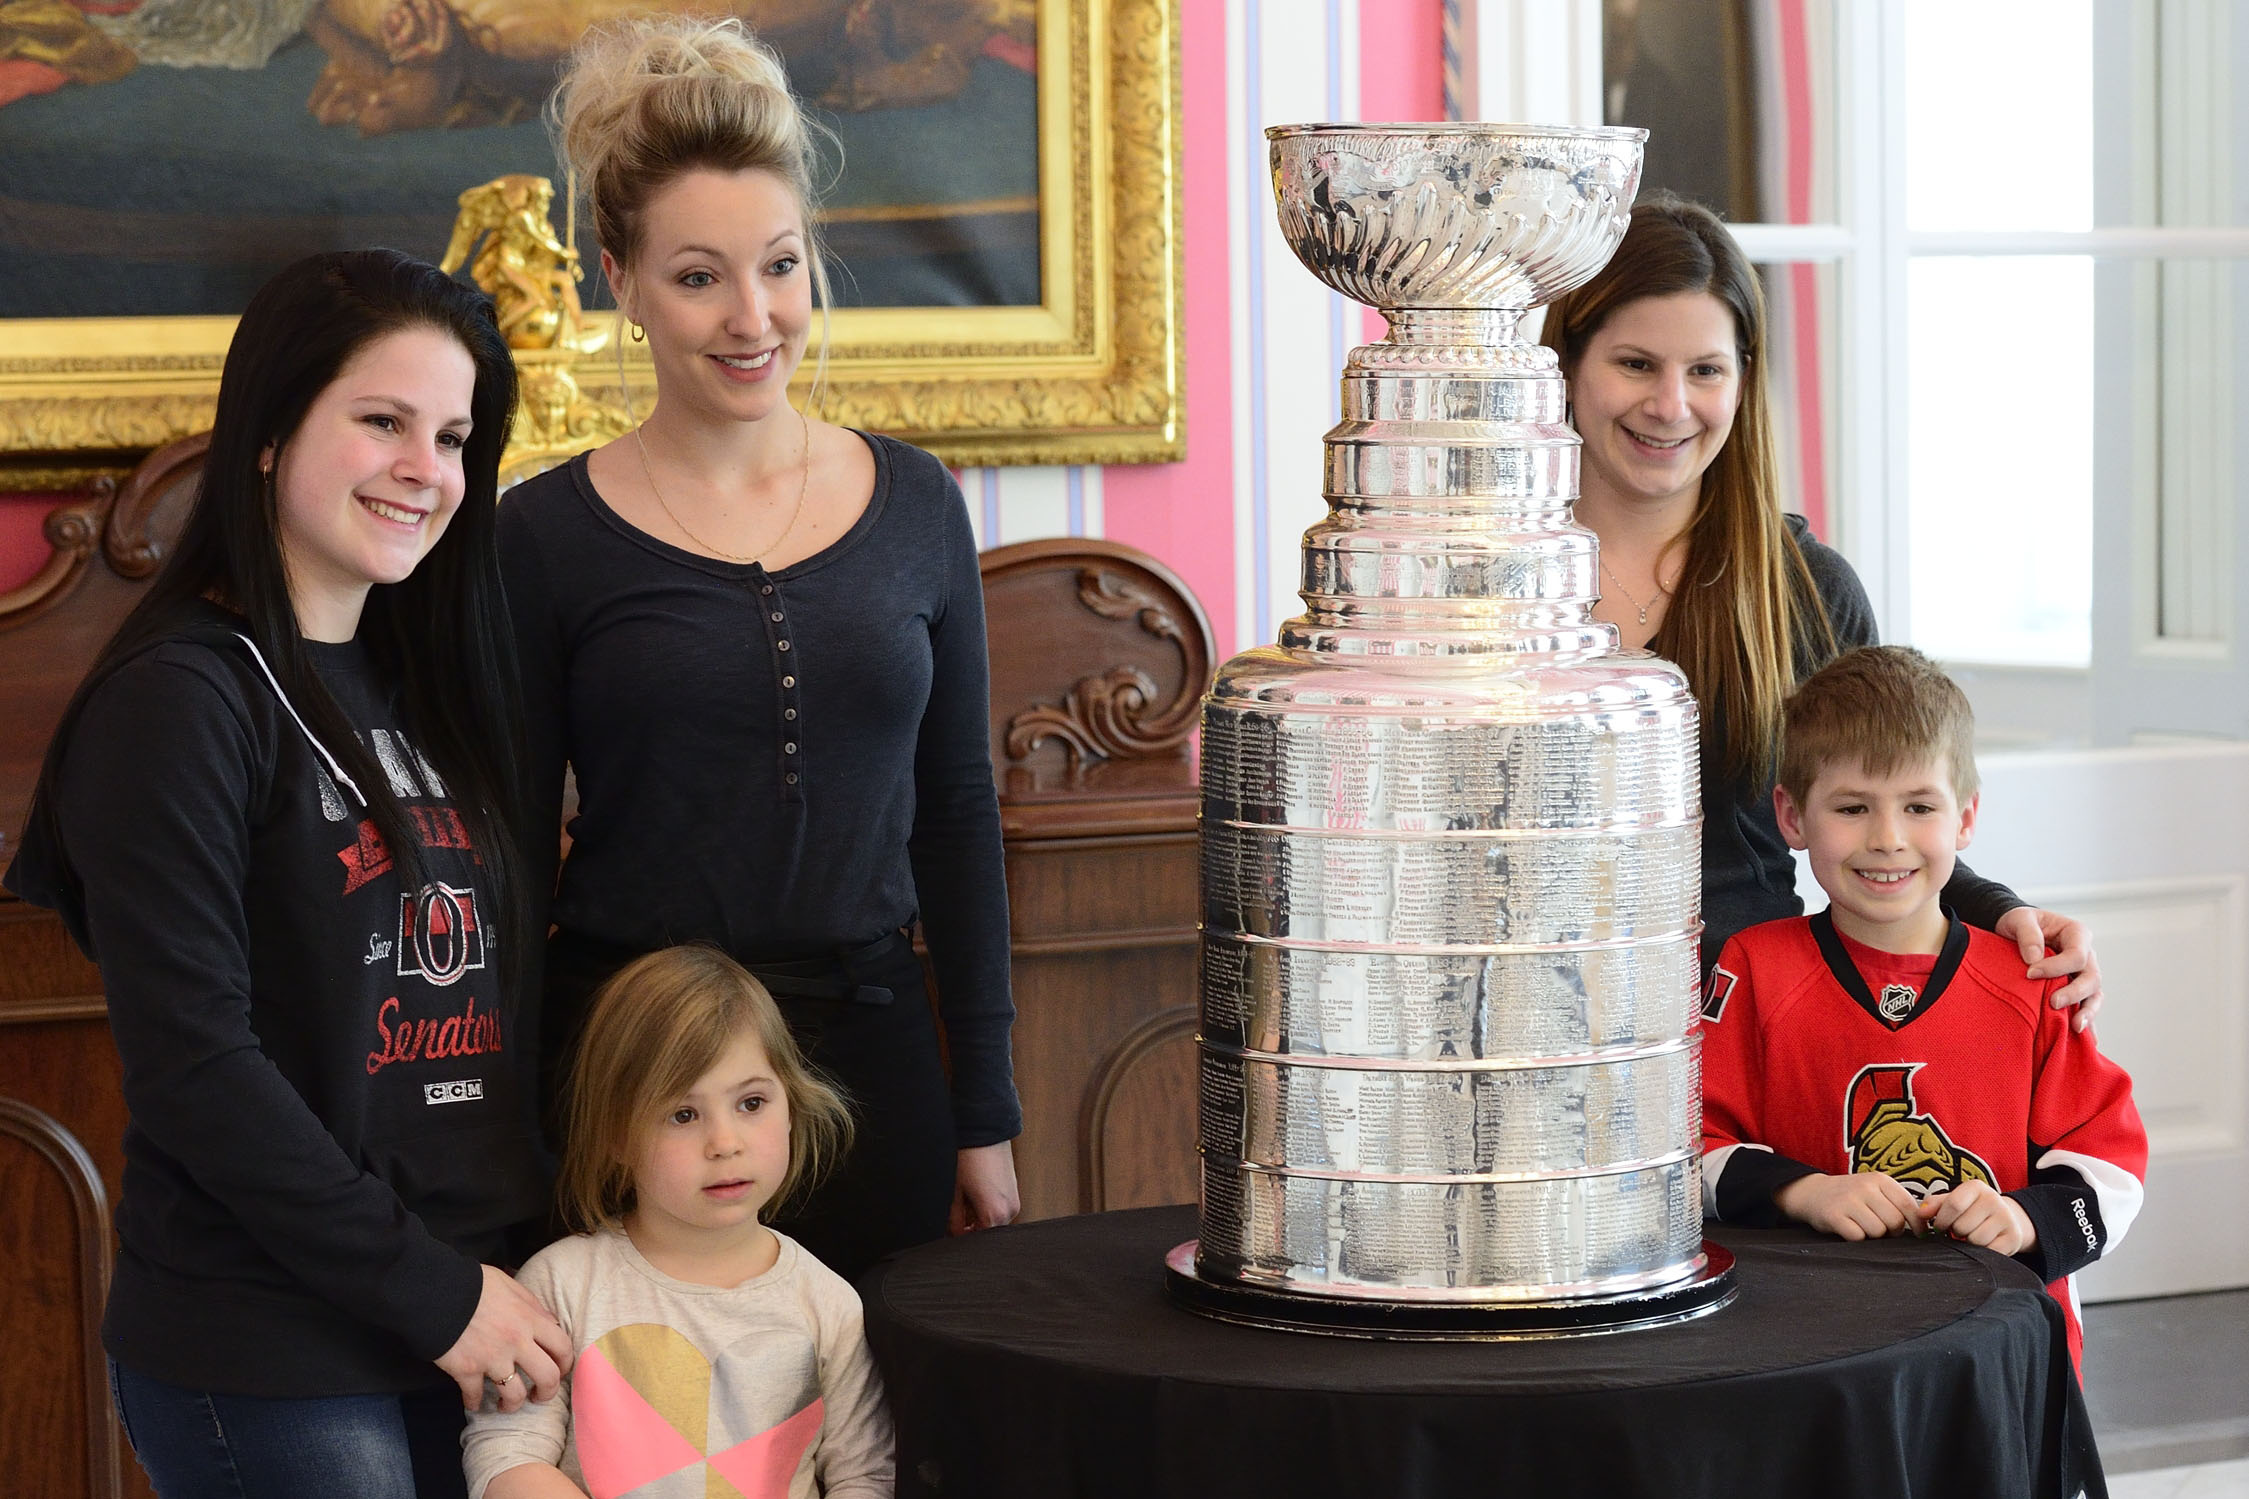 Members of the public had the opportunity to see and take their picture with the Stanley Cup underneath the portrait of Lord Stanley, Governor General of Canada from 1888-1893, who had the idea of giving our country this treasured national icon.